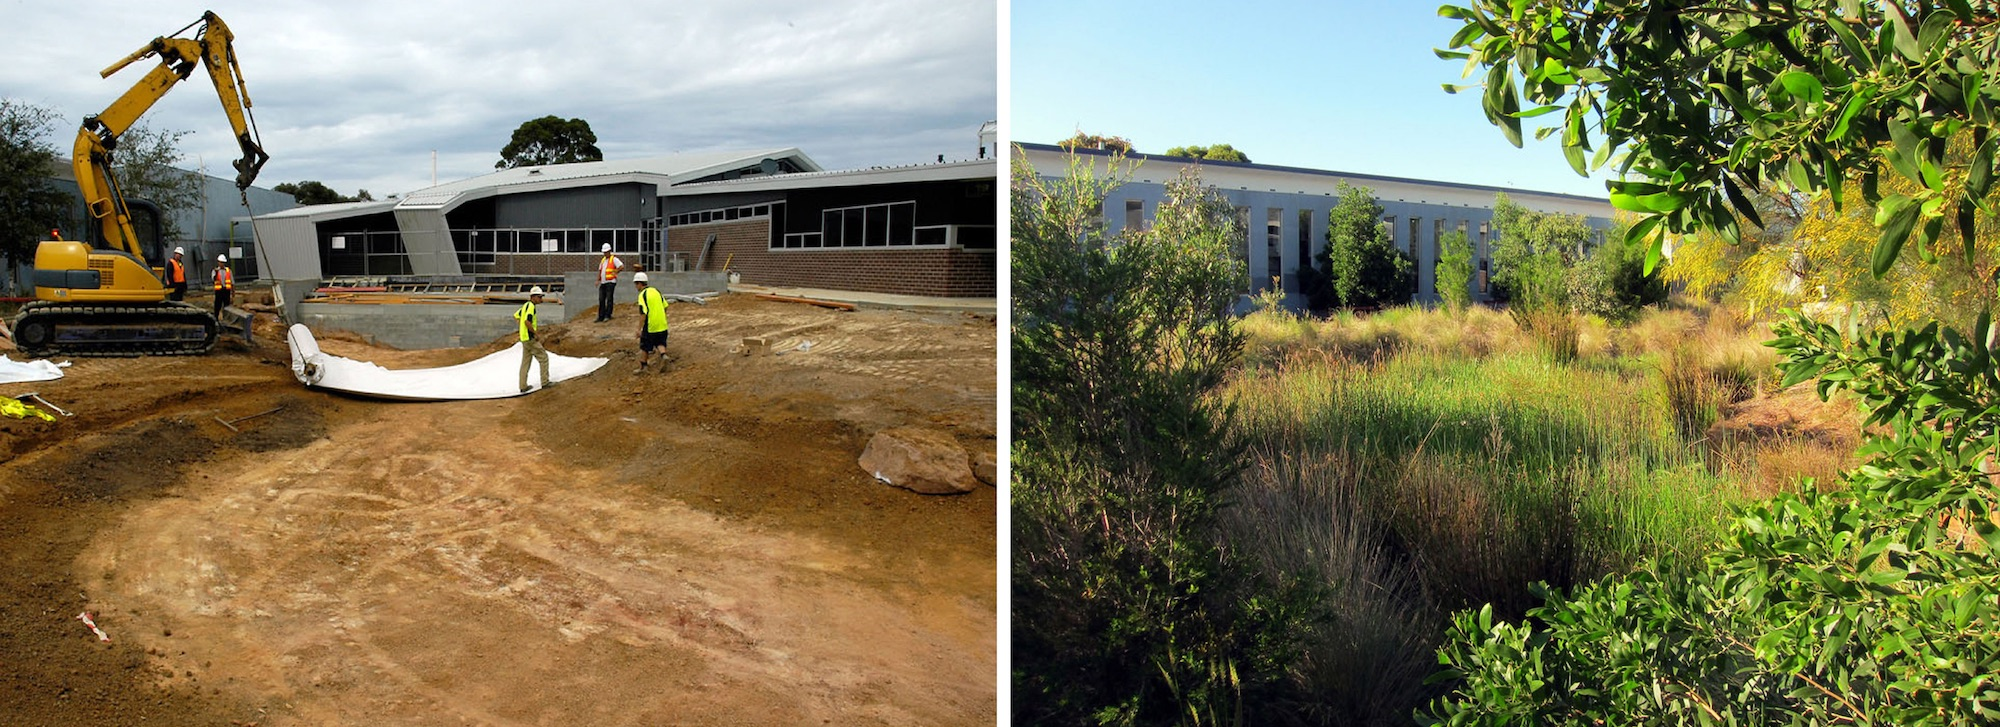 Building the wetland ecosystem among the school buildings at Bentleigh Secondary College. Left: Construction begins in 2009. Right: Present day. Photos courtesy of Bentleigh Secondary College.